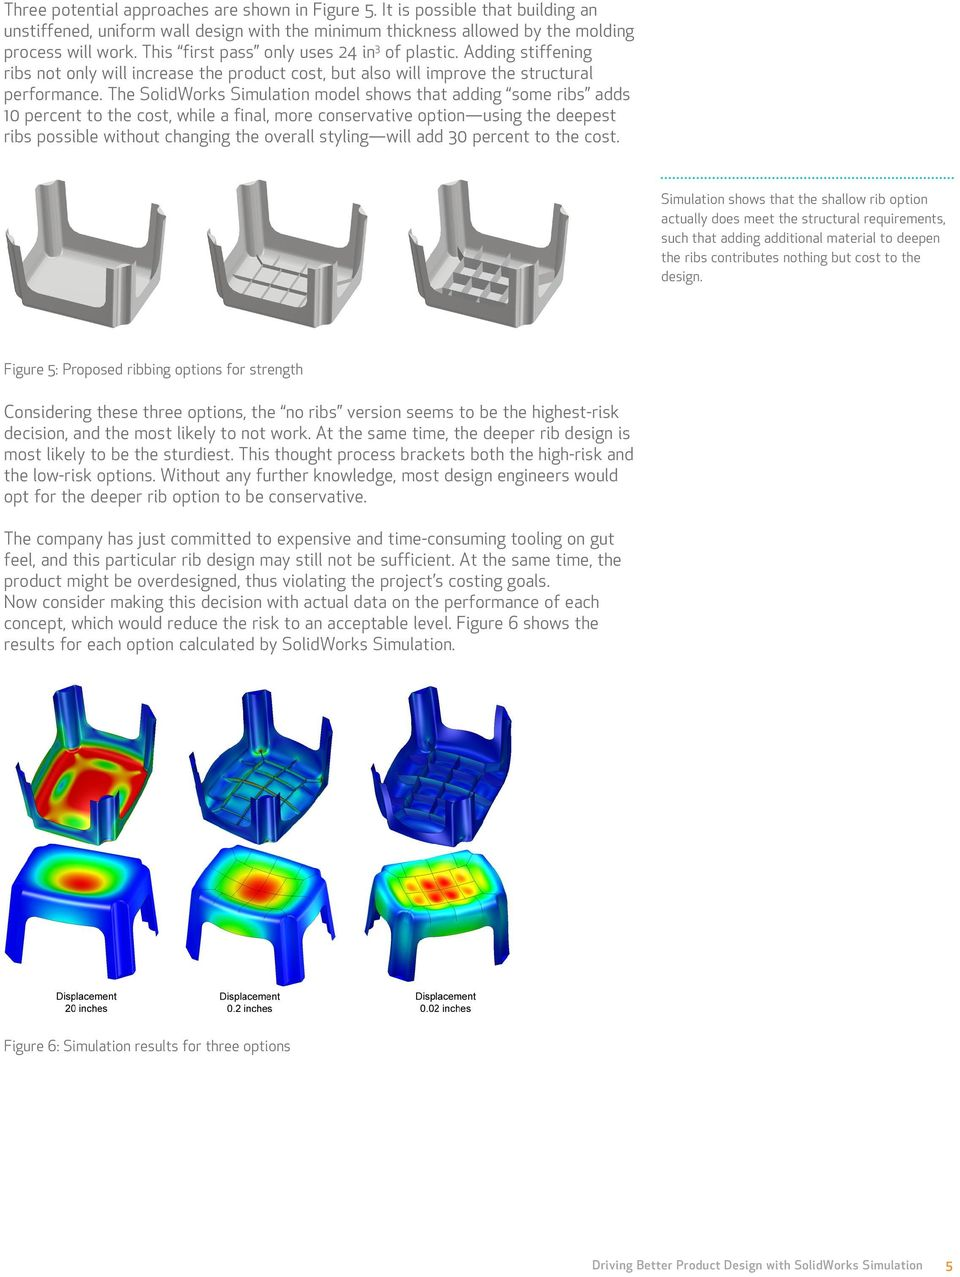 The SolidWorks Simulation model shows that adding some ribs adds 10 percent to the cost, while a final, more conservative option using the deepest ribs possible without changing the overall styling